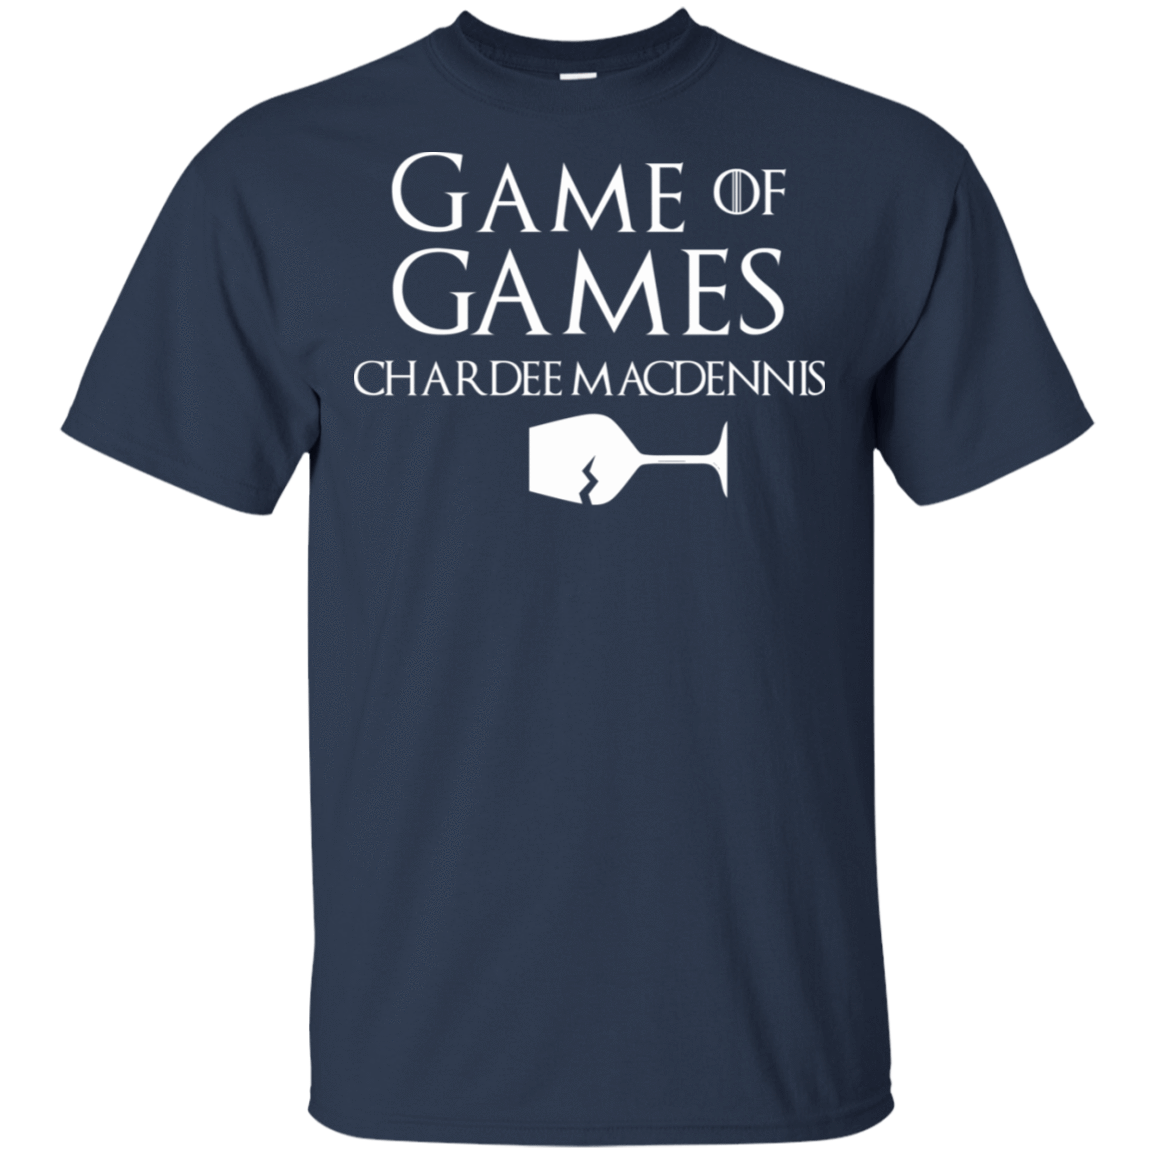 Game Of Games Chardee Macdennis 22-111-72957242-250 - Tee Ript